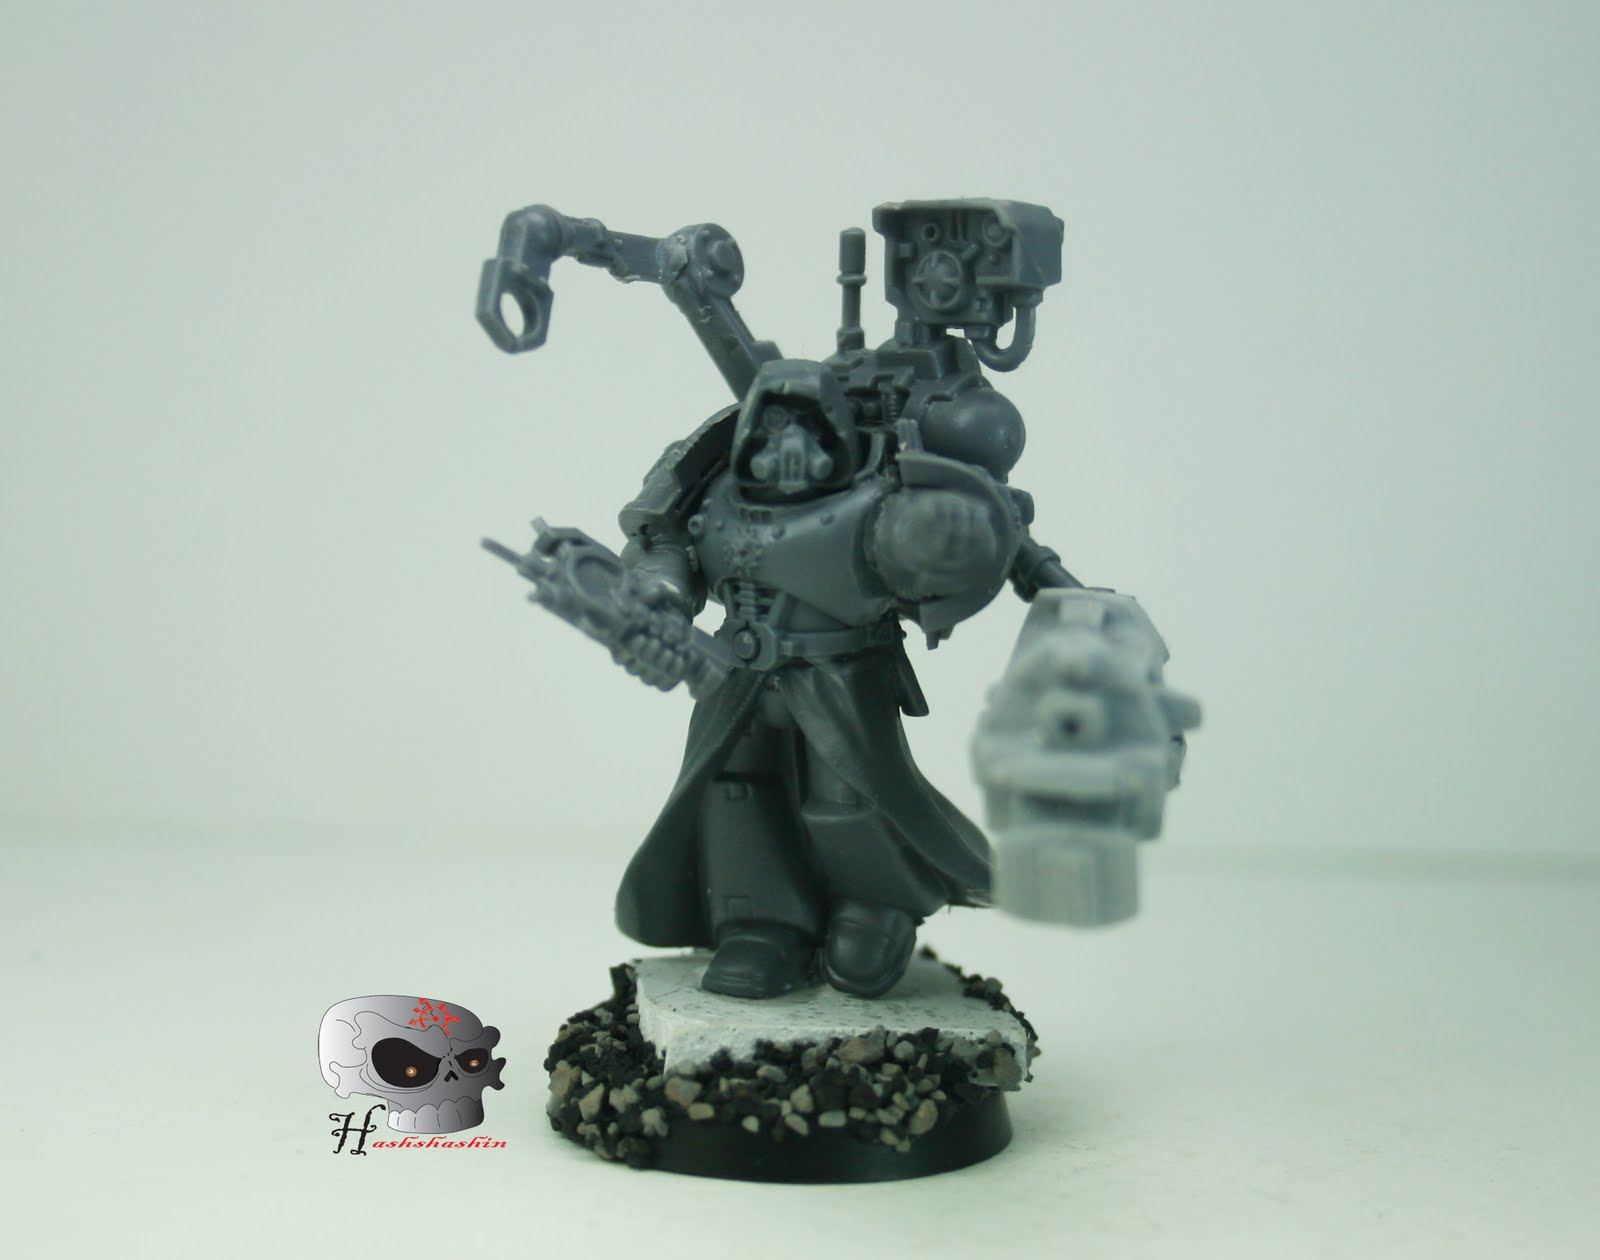 Why The Conversion Beamer You May Ask Well Its Pre Heresy And It Can Shoot Across Board Something Very Little In GK Dex